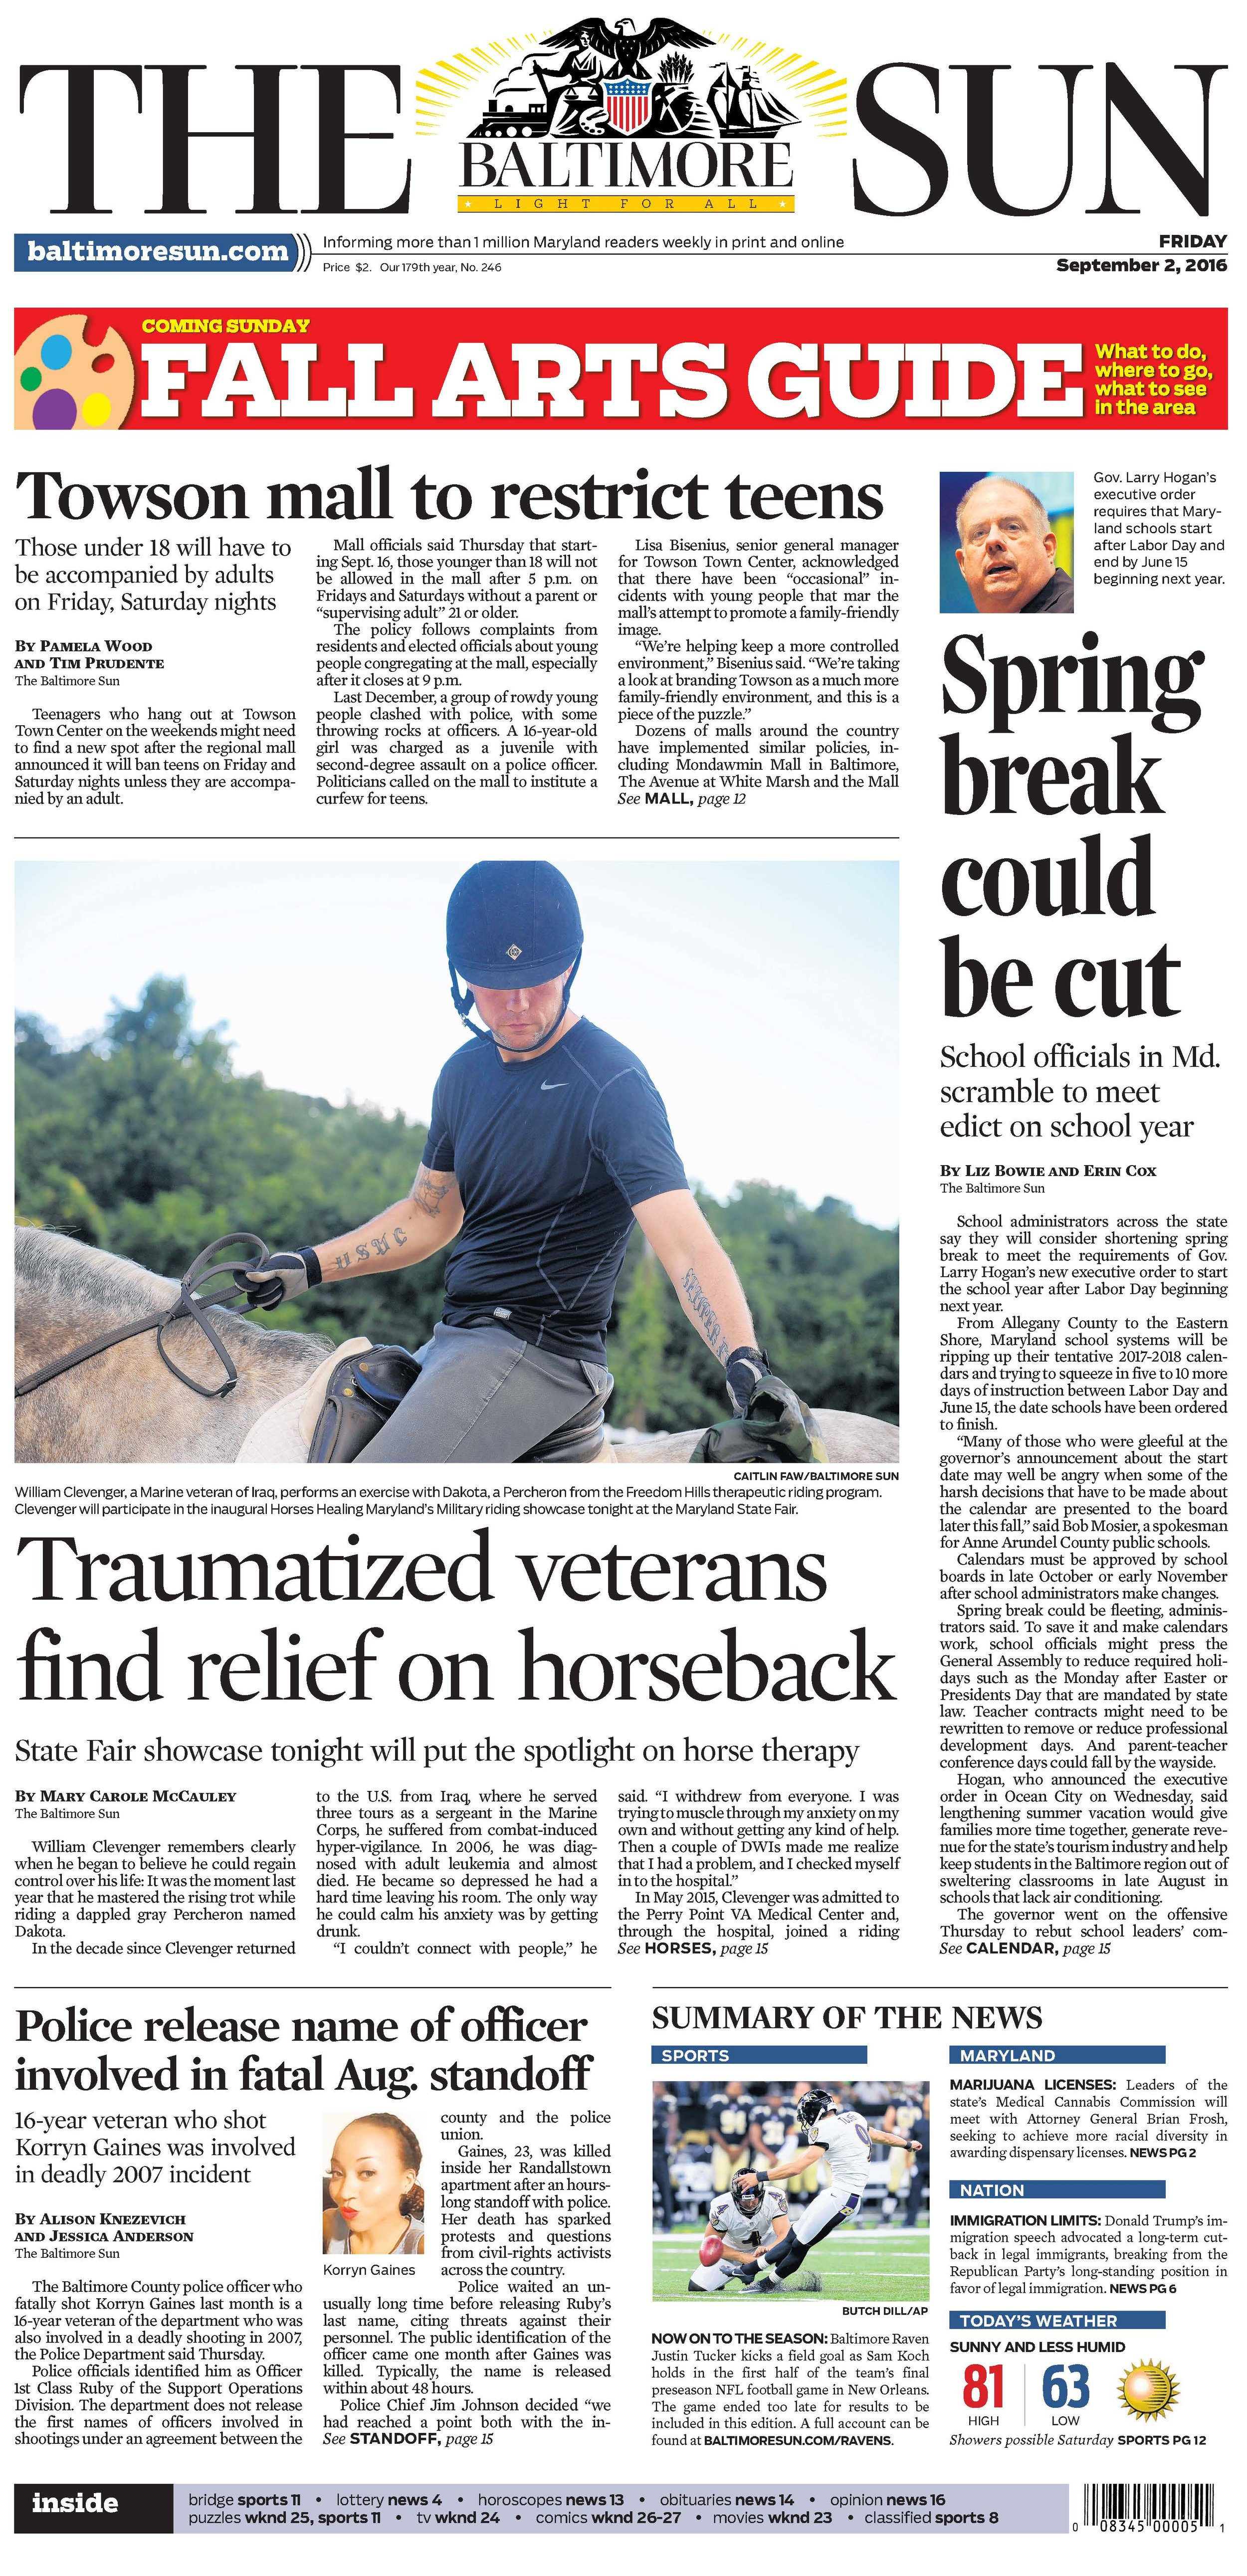 The Baltimore Sun   Friday, September 2, 2016